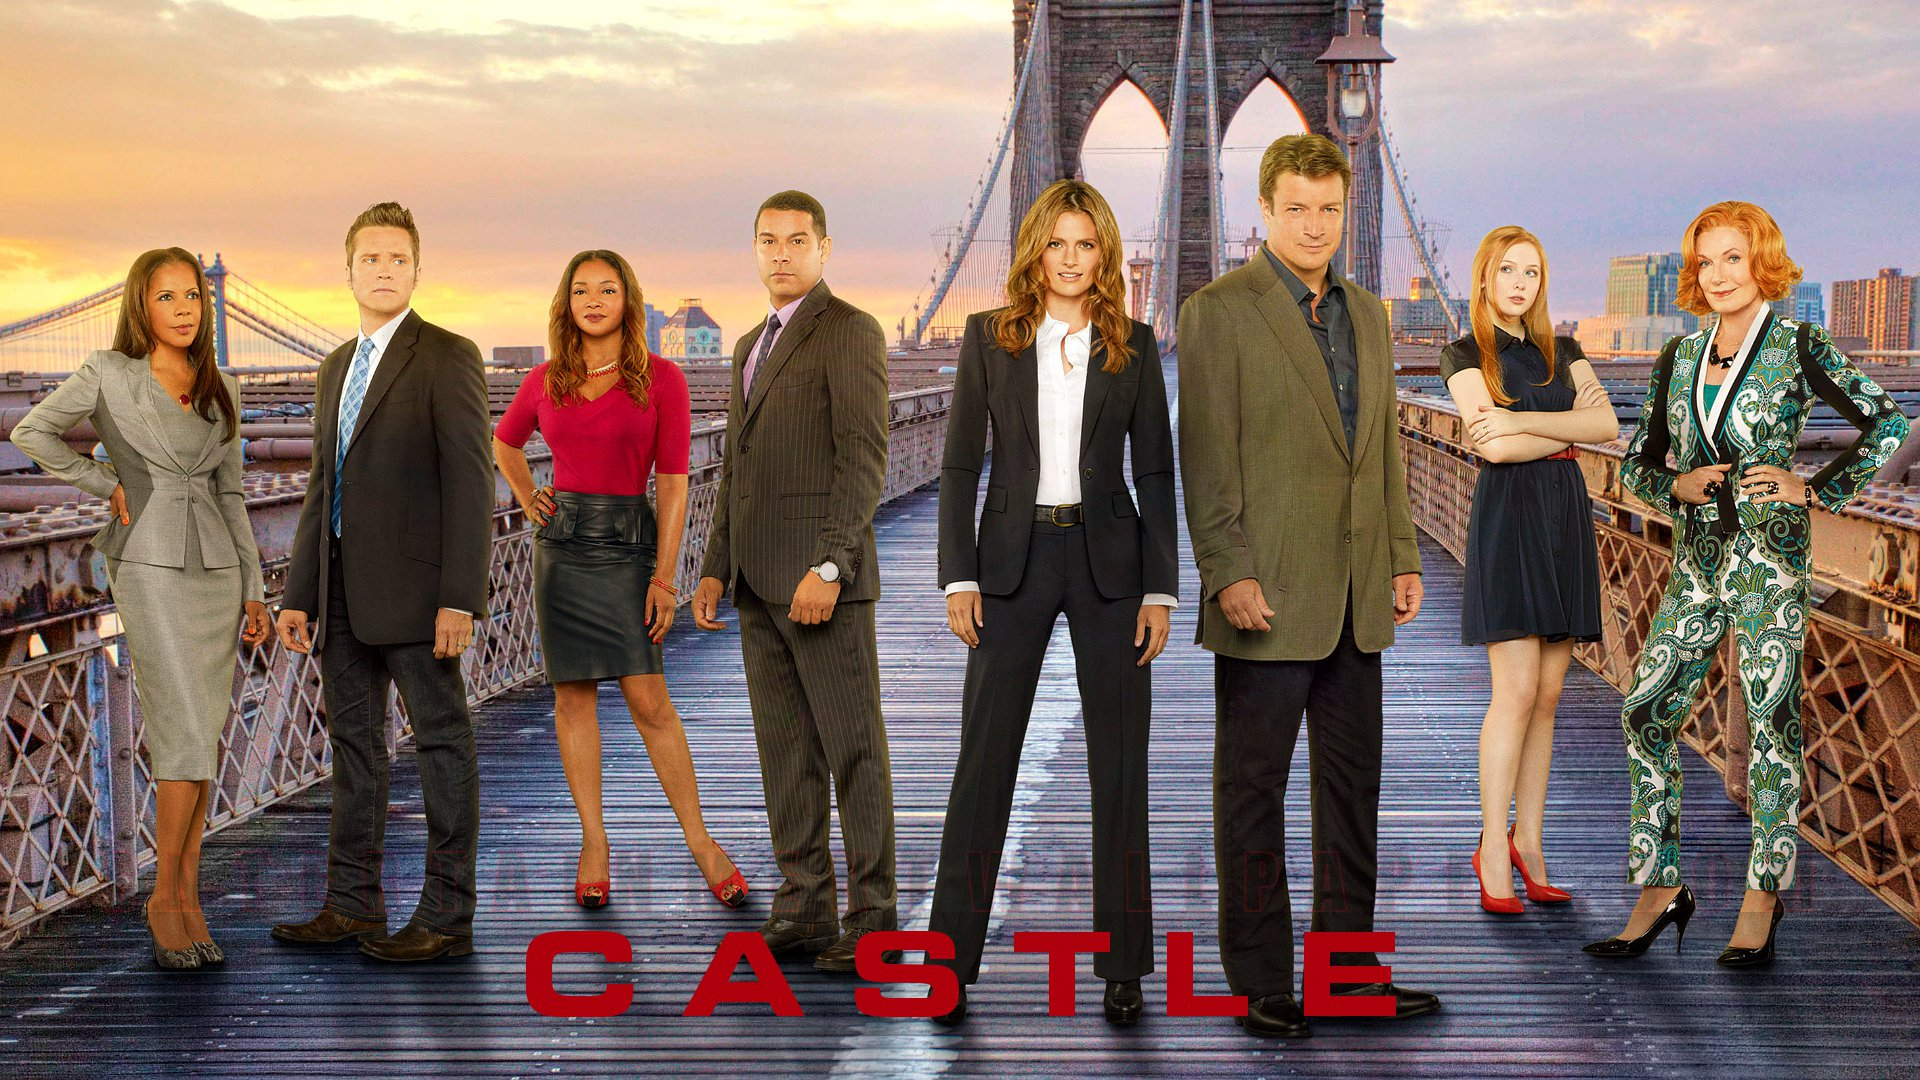 Castle TV Show Wallpaper - Wallpaper, High Definition, High Quality ...: www.bwallpapers.com/wallpaper/castle-tv-show-wallpaper-5171